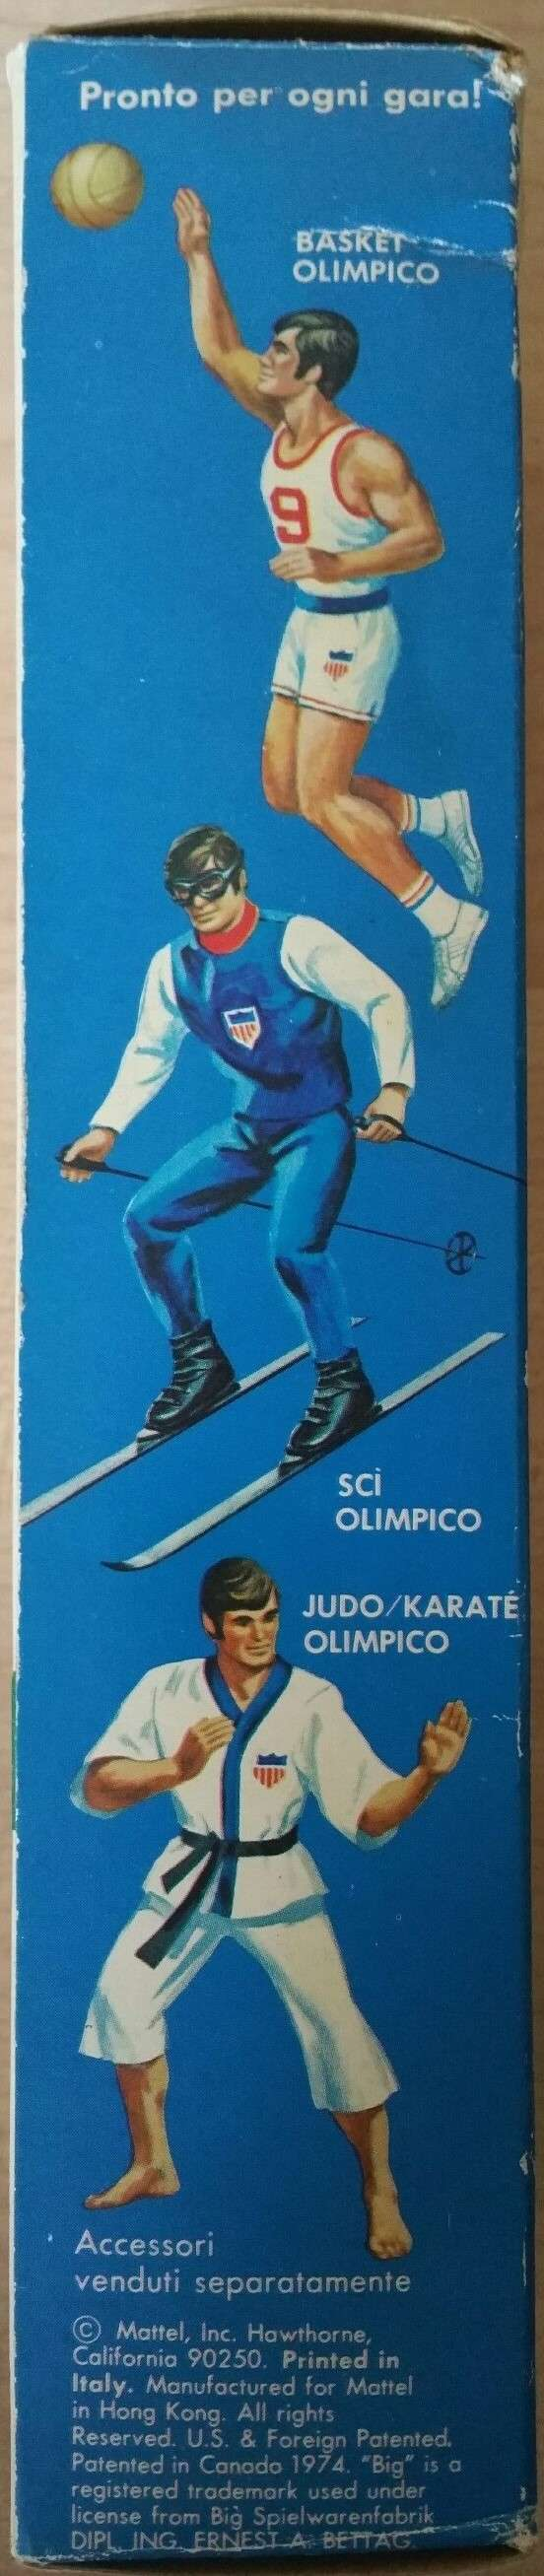 BIG JIM OLIMPICO NO. 7499 212